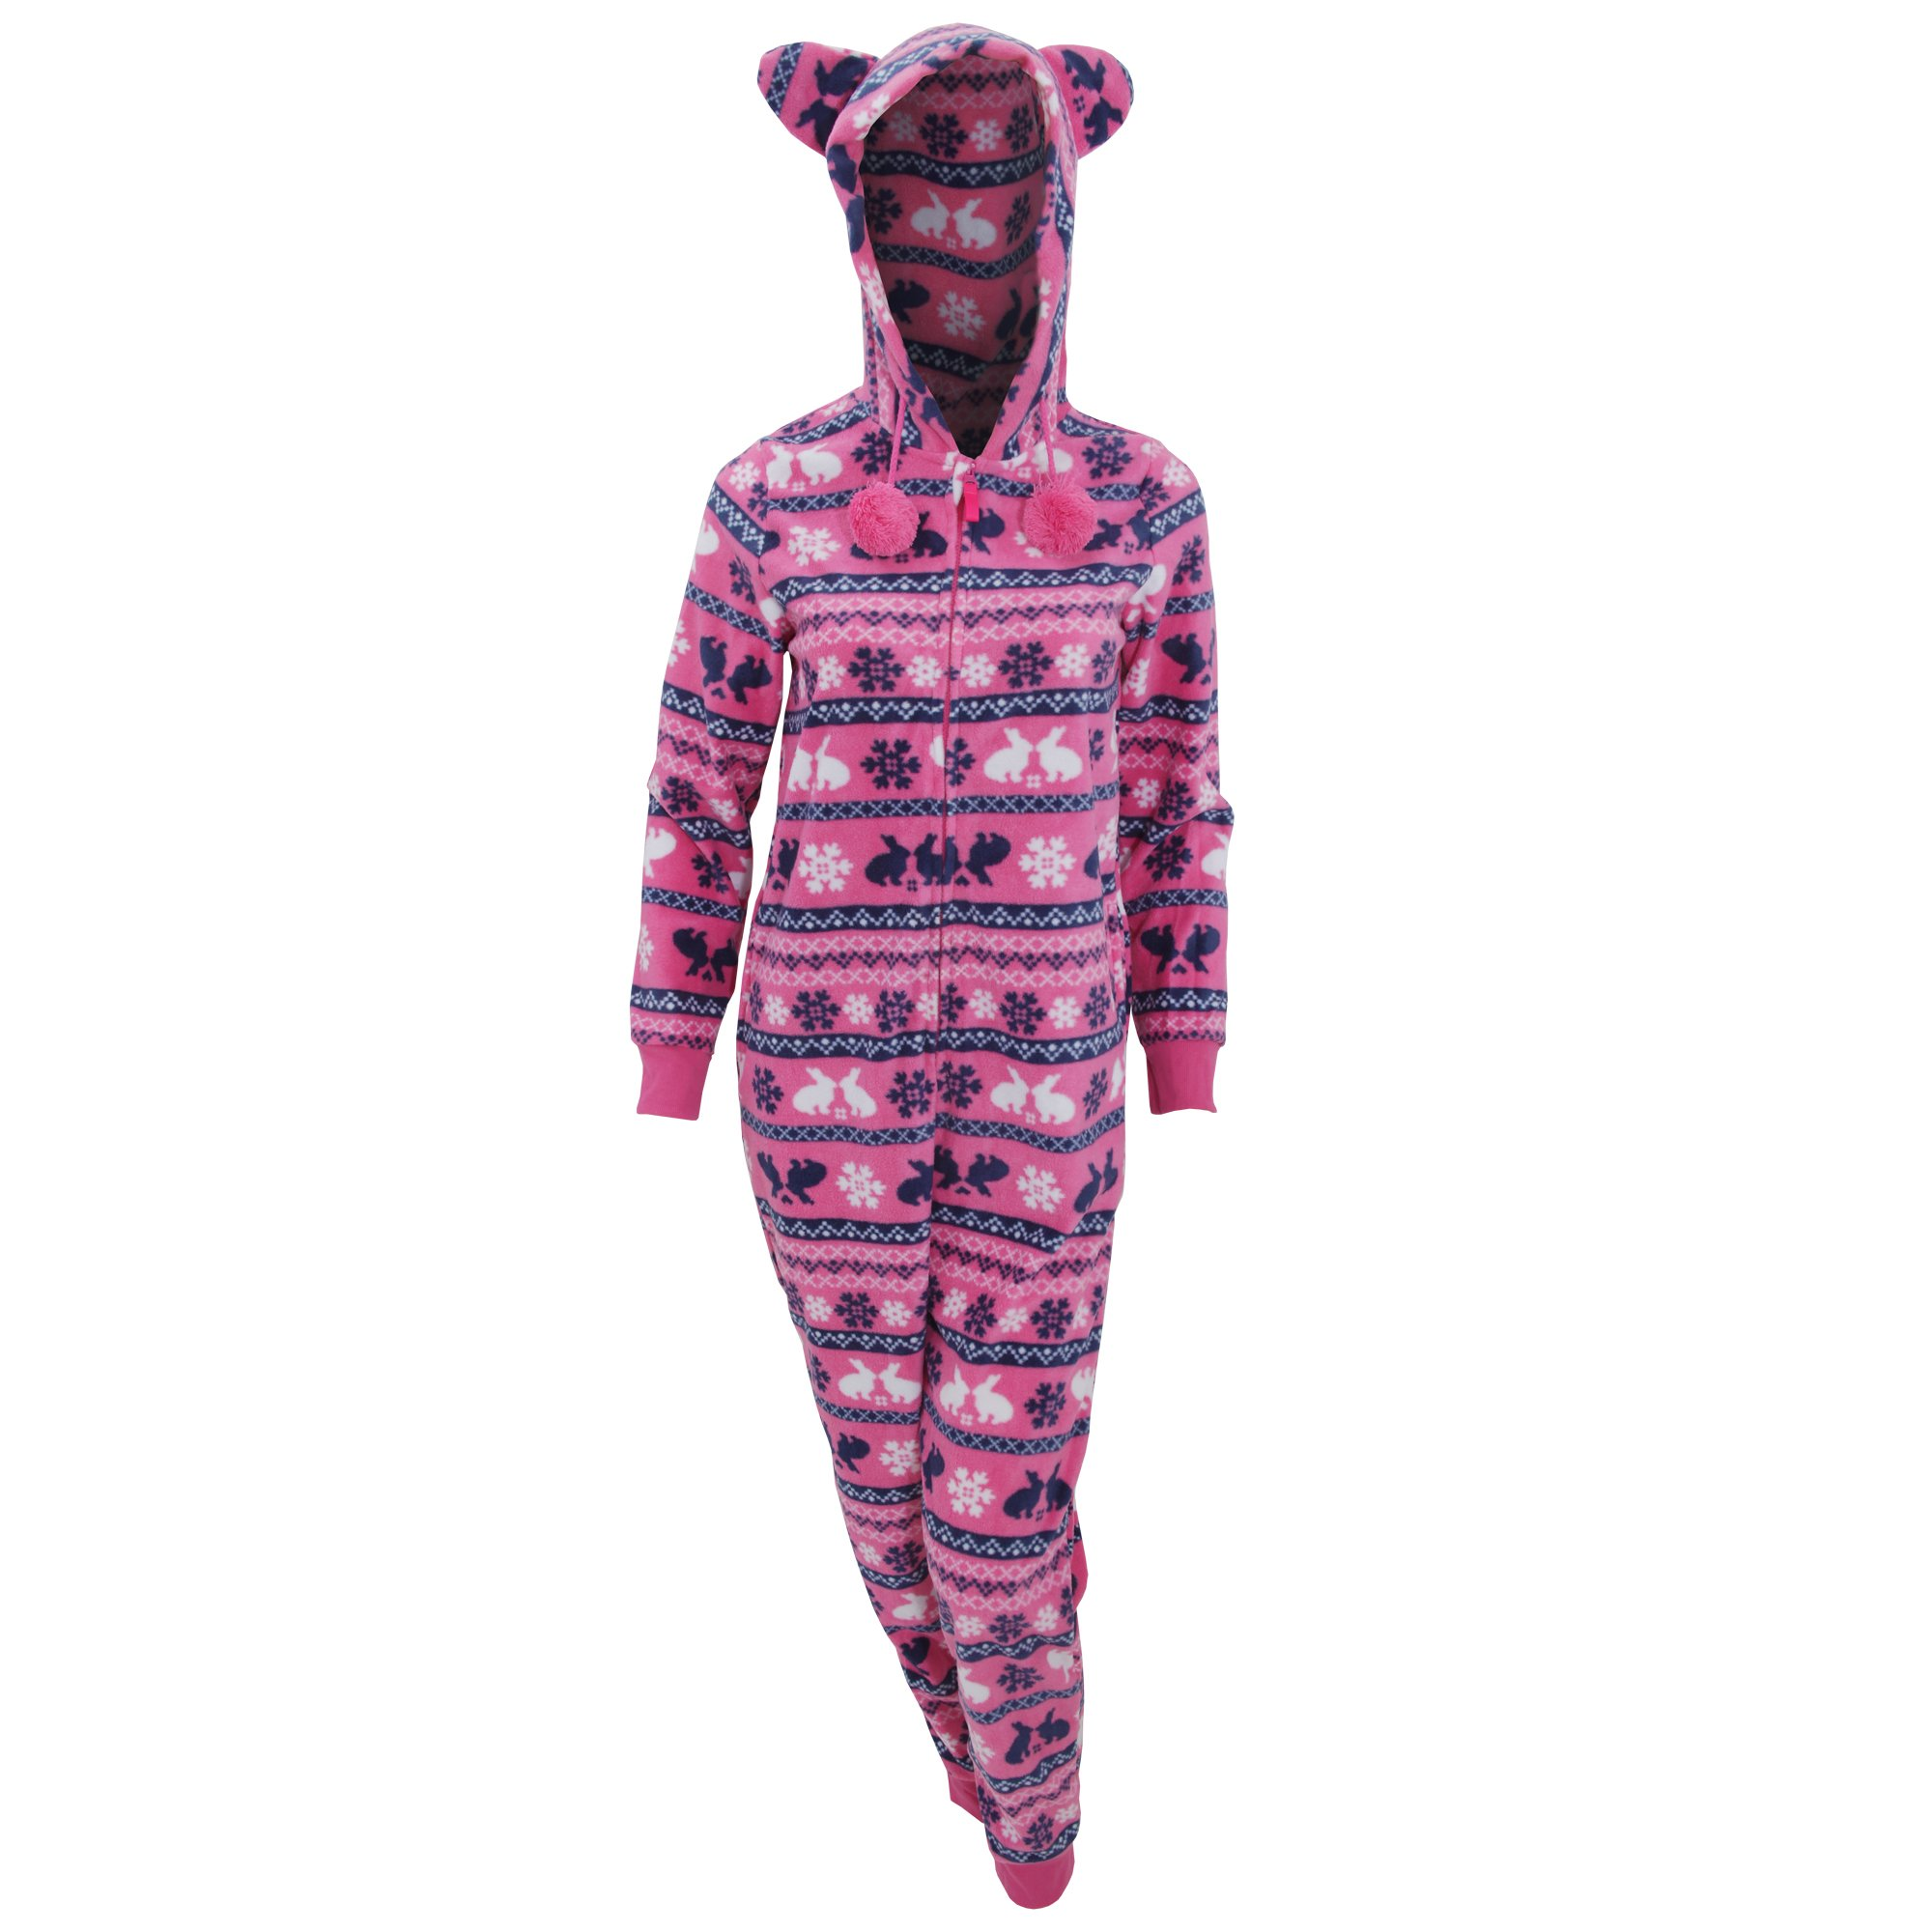 Womens/Ladies Hooded Fairisle Rabbit/Snowflake Pattern Microfleece Onesie